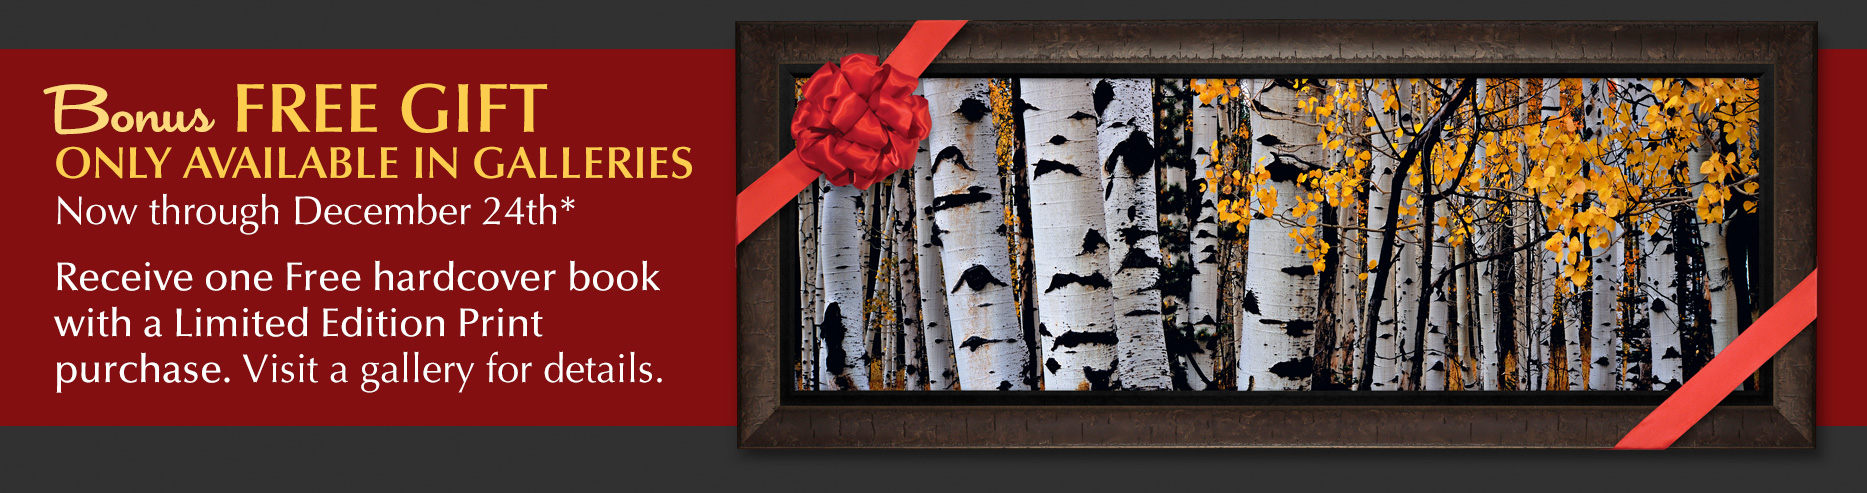 Shop The Art to find the perfect Limited Edition Print for your home or office.